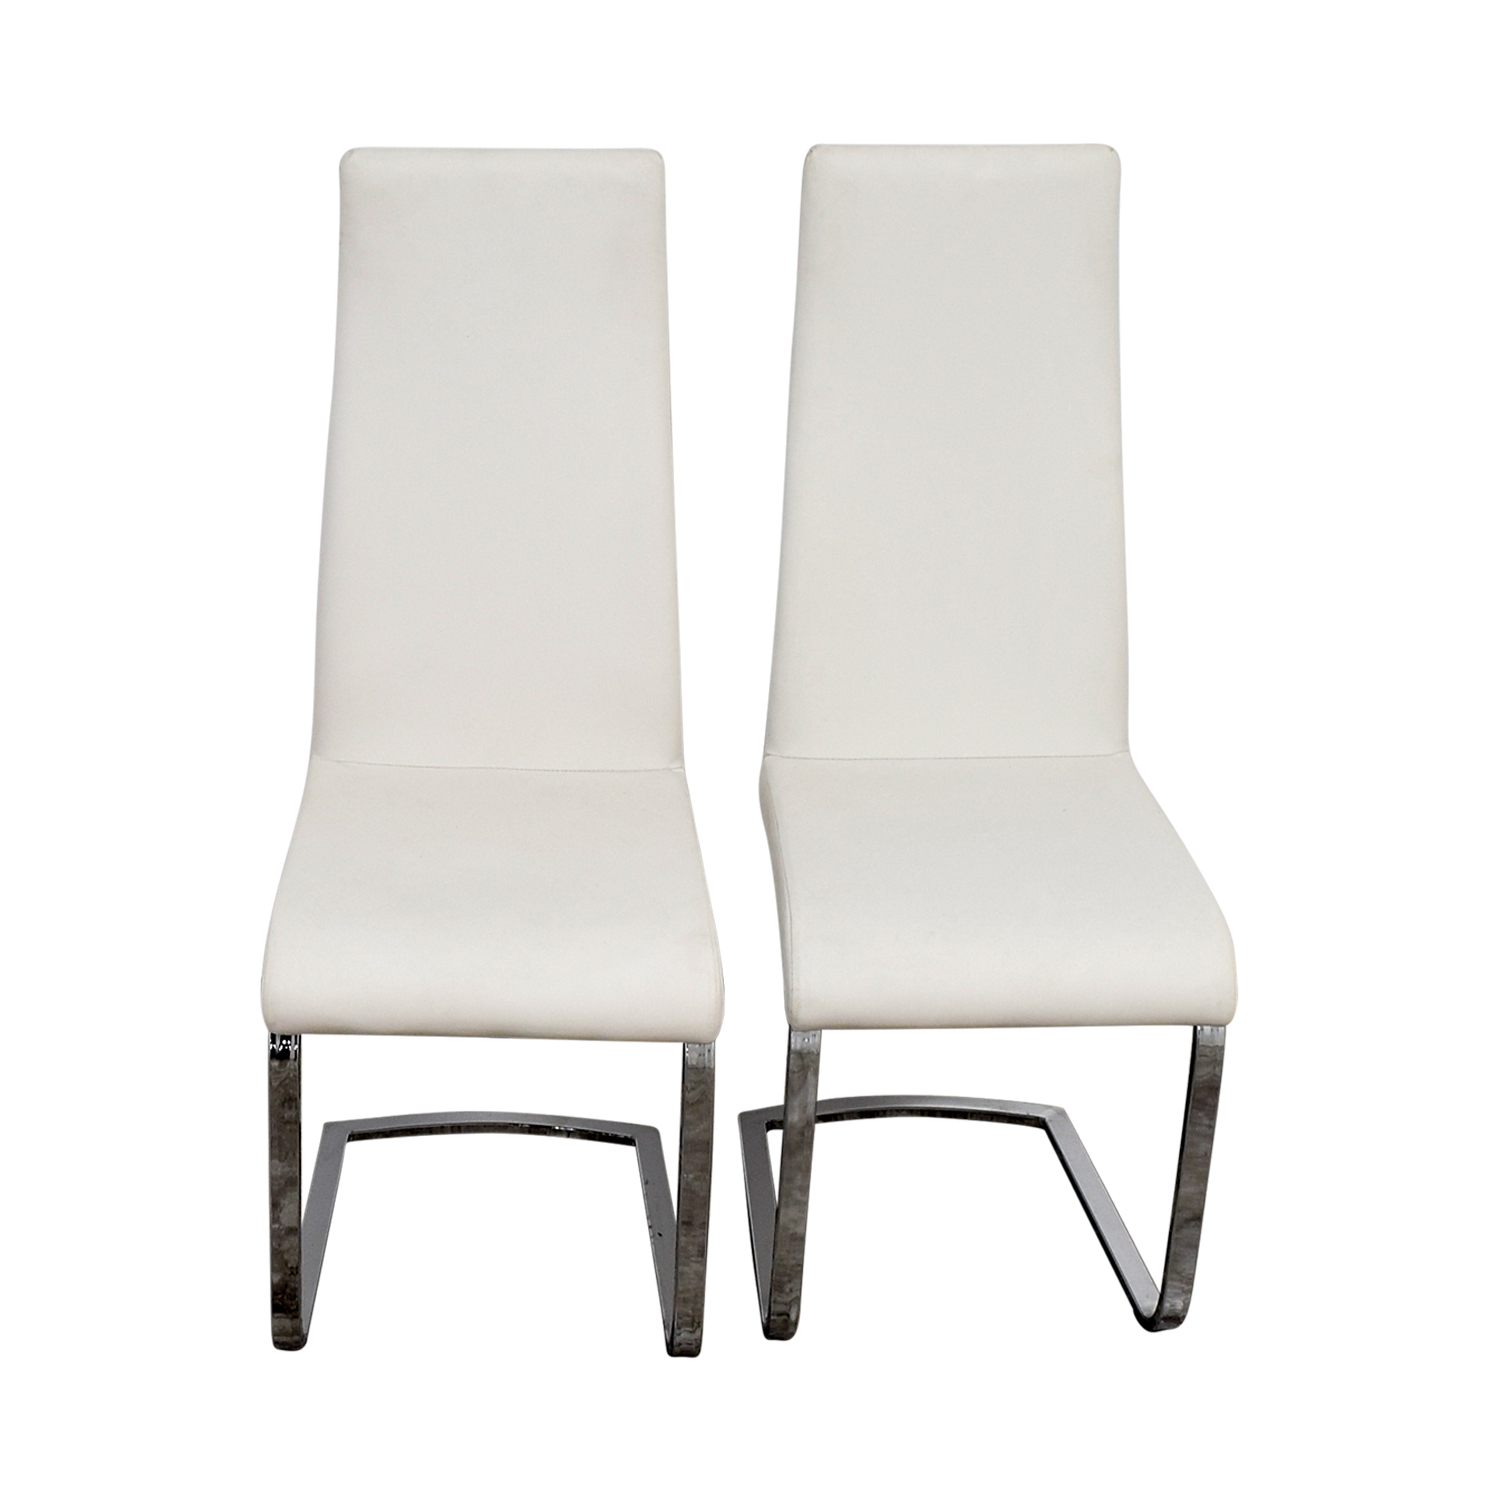 Coaster Furniture Coaster Furniture Breuer Style High Back Dining Chair in White Leatherette for sale